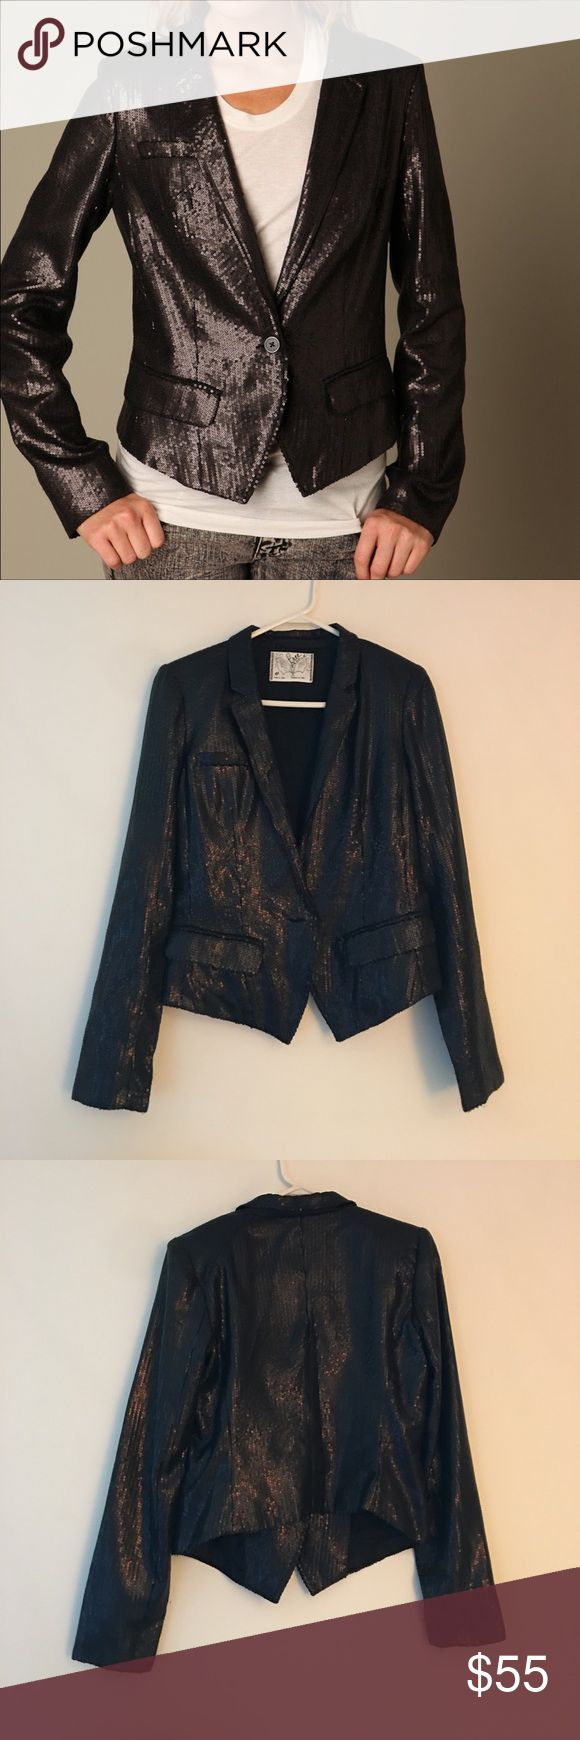 Free People Sequin Blazer FP black sequin blazer. Great used condition, some snags and fraying but nothing too noticeable. Some minor wear but no stains or holes. Single button closure, longer in front than back, padded shoulders. Make an offer! 😊 Free People Jackets & Coats Blazers